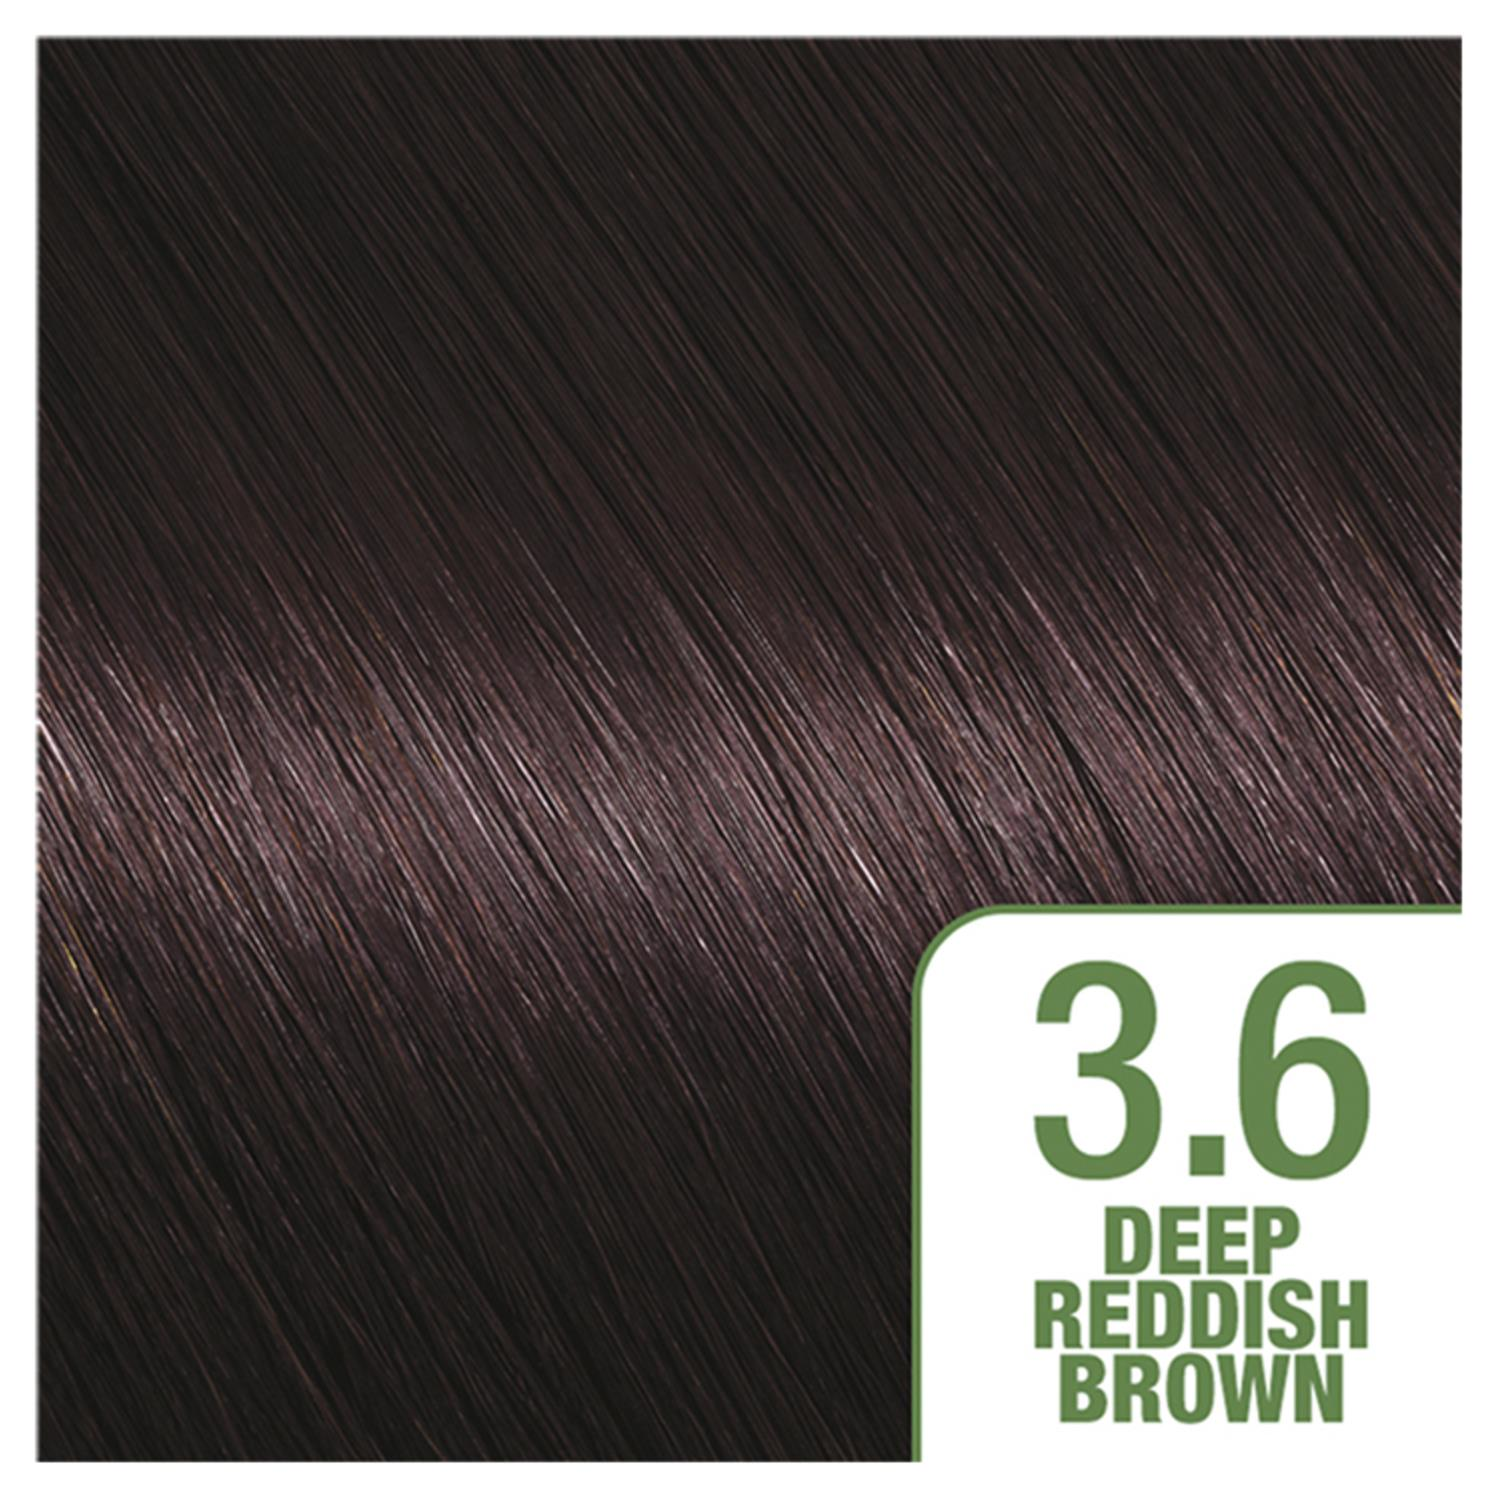 thumbnail 42 - 3 Pack Garnier Nutrisse Permanent Hair Dye With Different Shades